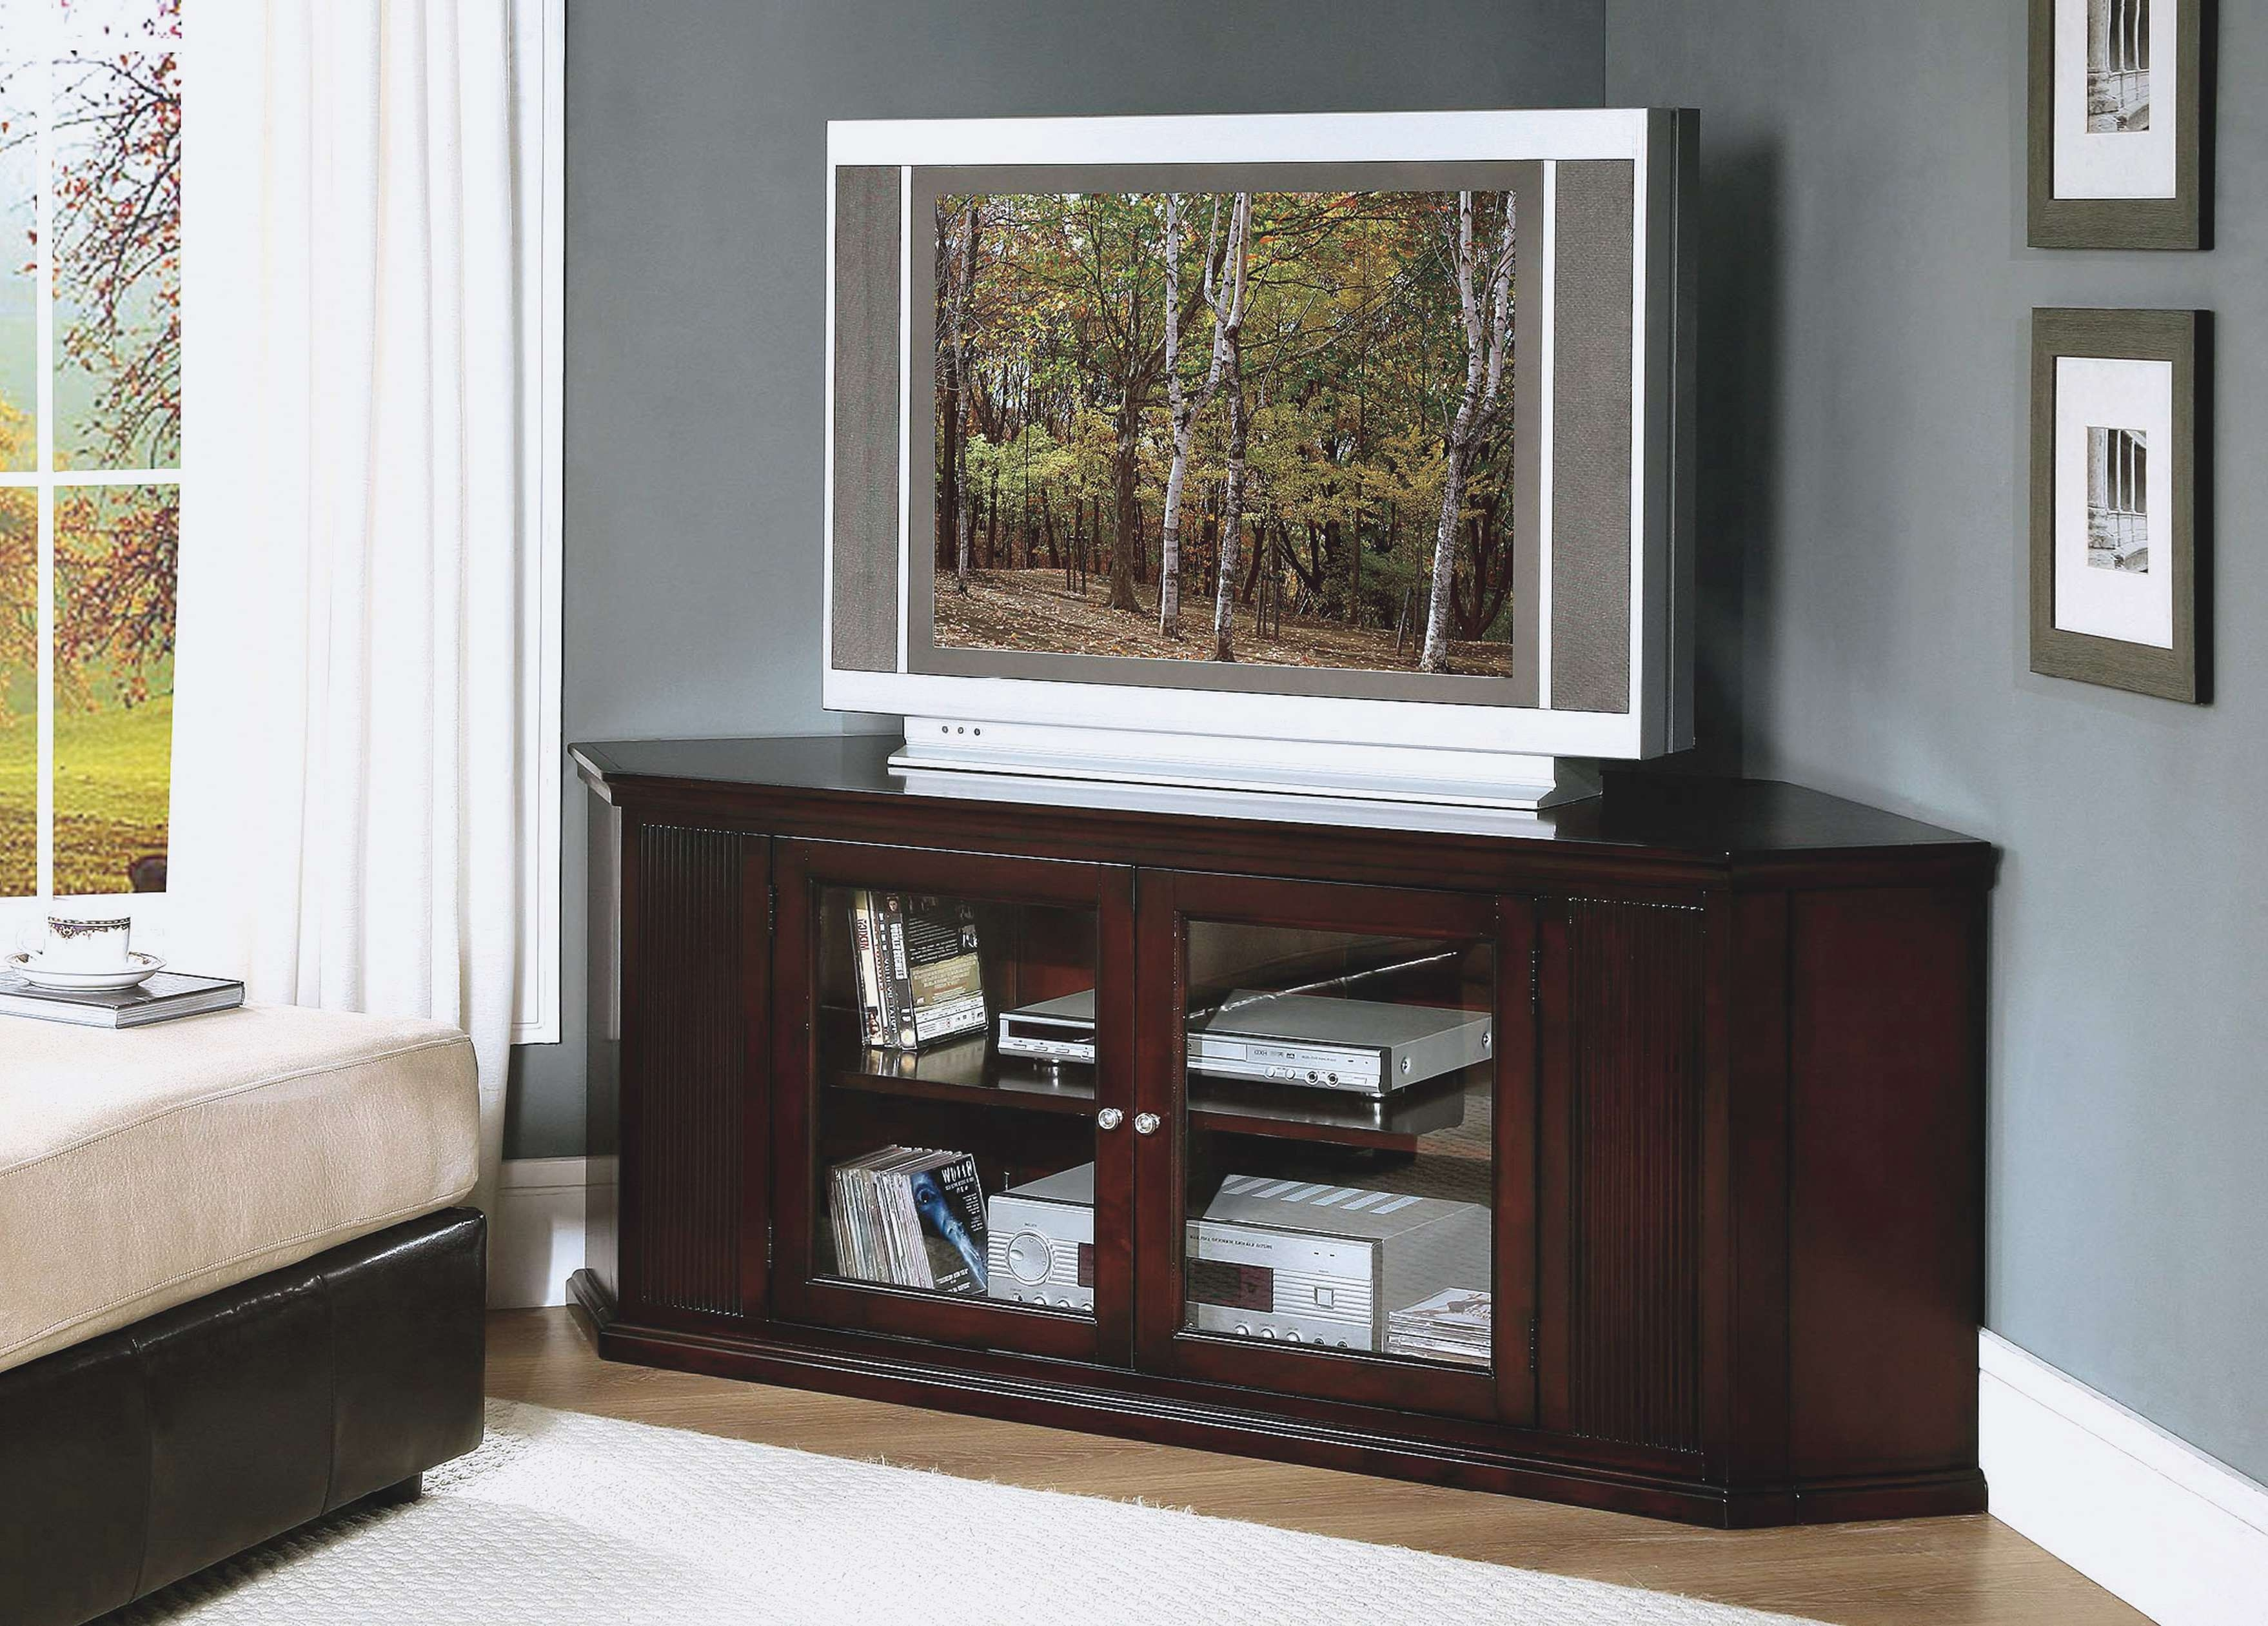 Dark Brown Oak Wood Corner Tv Stand With Glass Doors Of Dazzling Intended For Corner Tv Cabinets With Glass Doors (View 6 of 20)